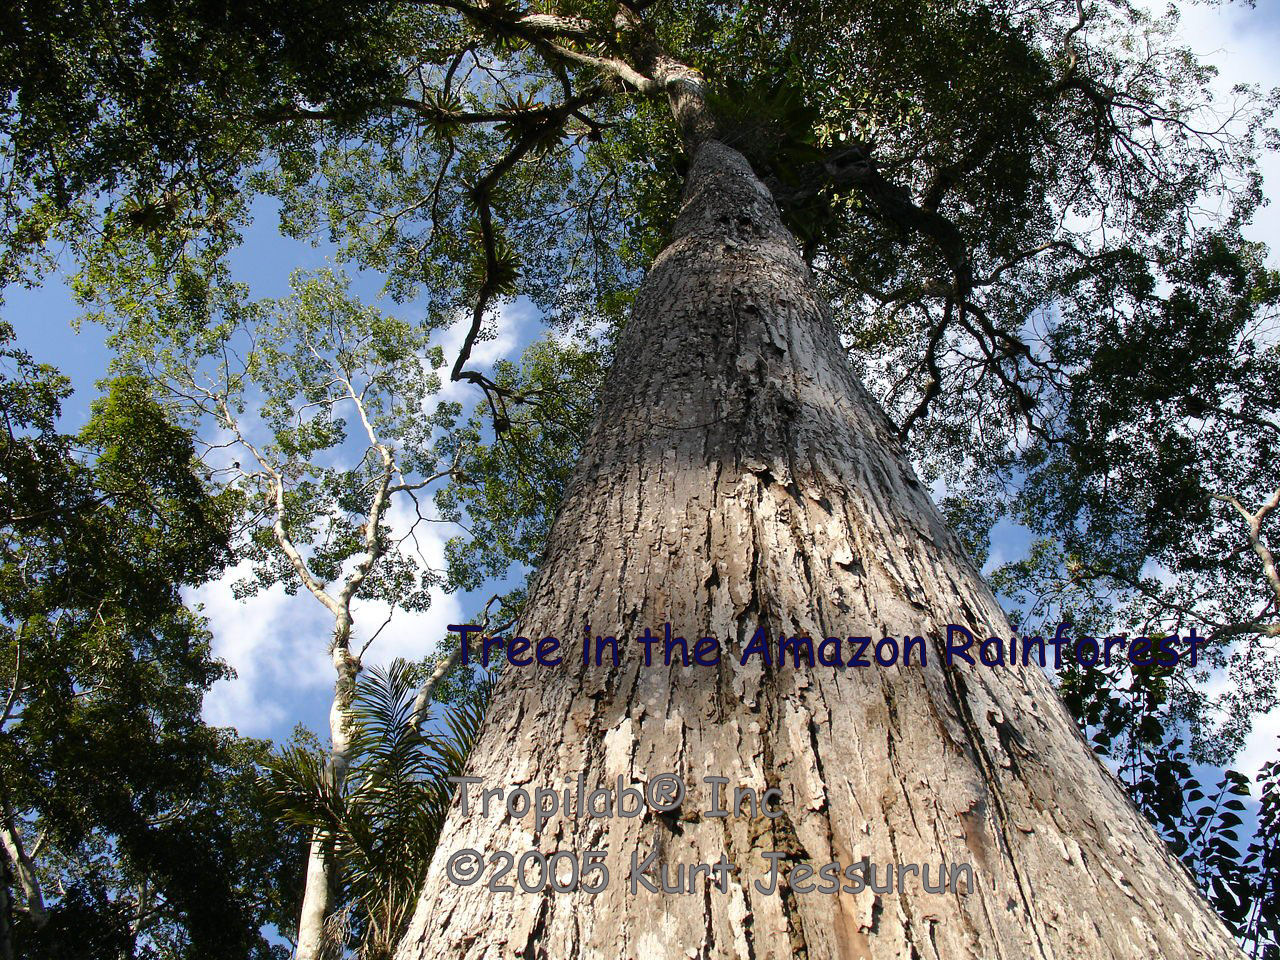 Big tree in the amazon rainforest